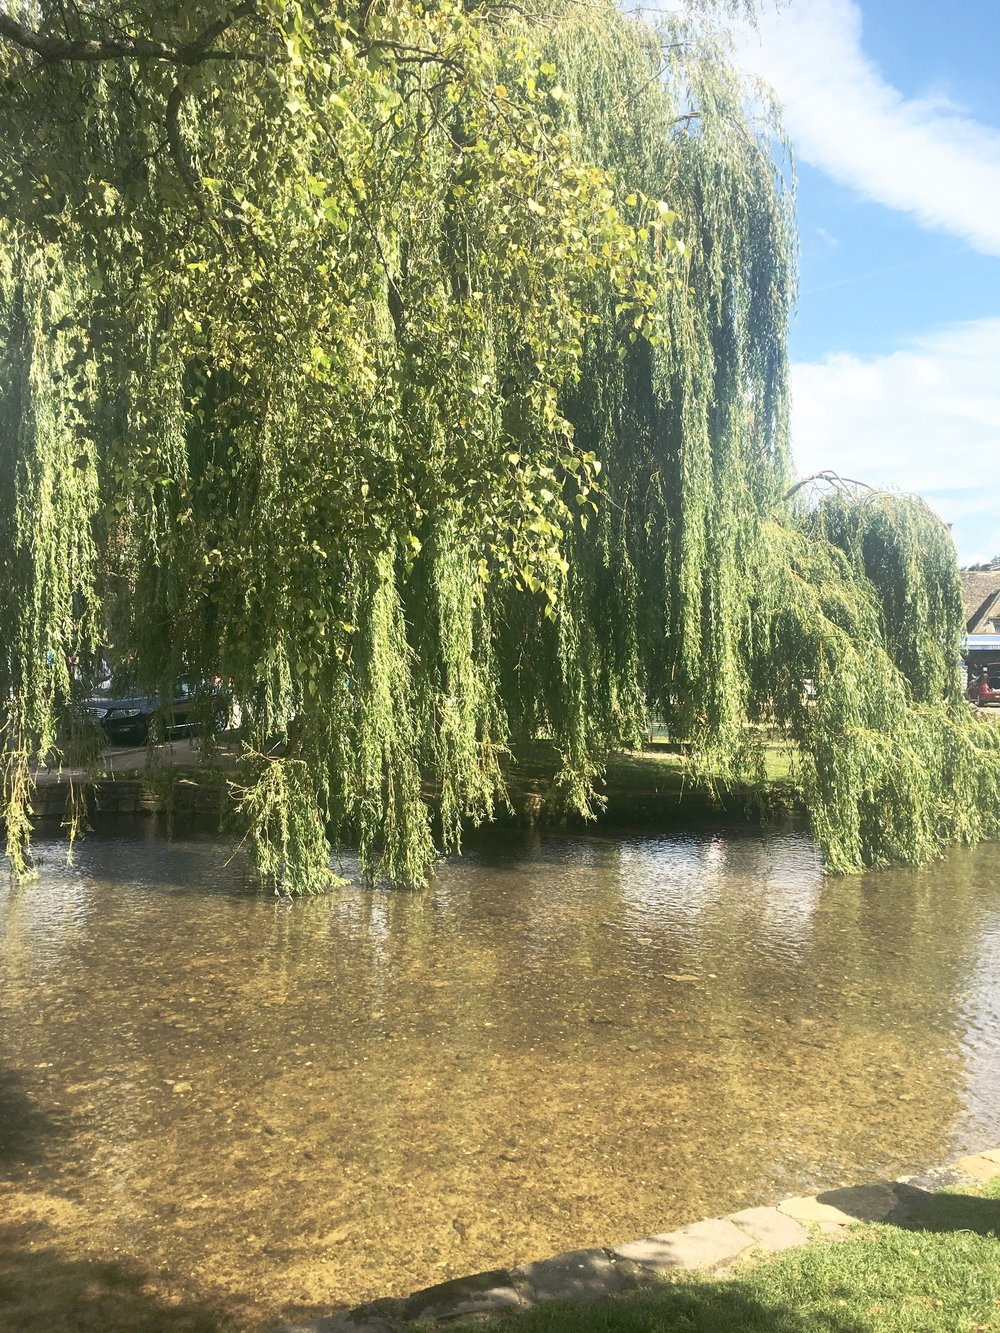 This simply stunning weeping willow is so befitting here in this quaint little village.